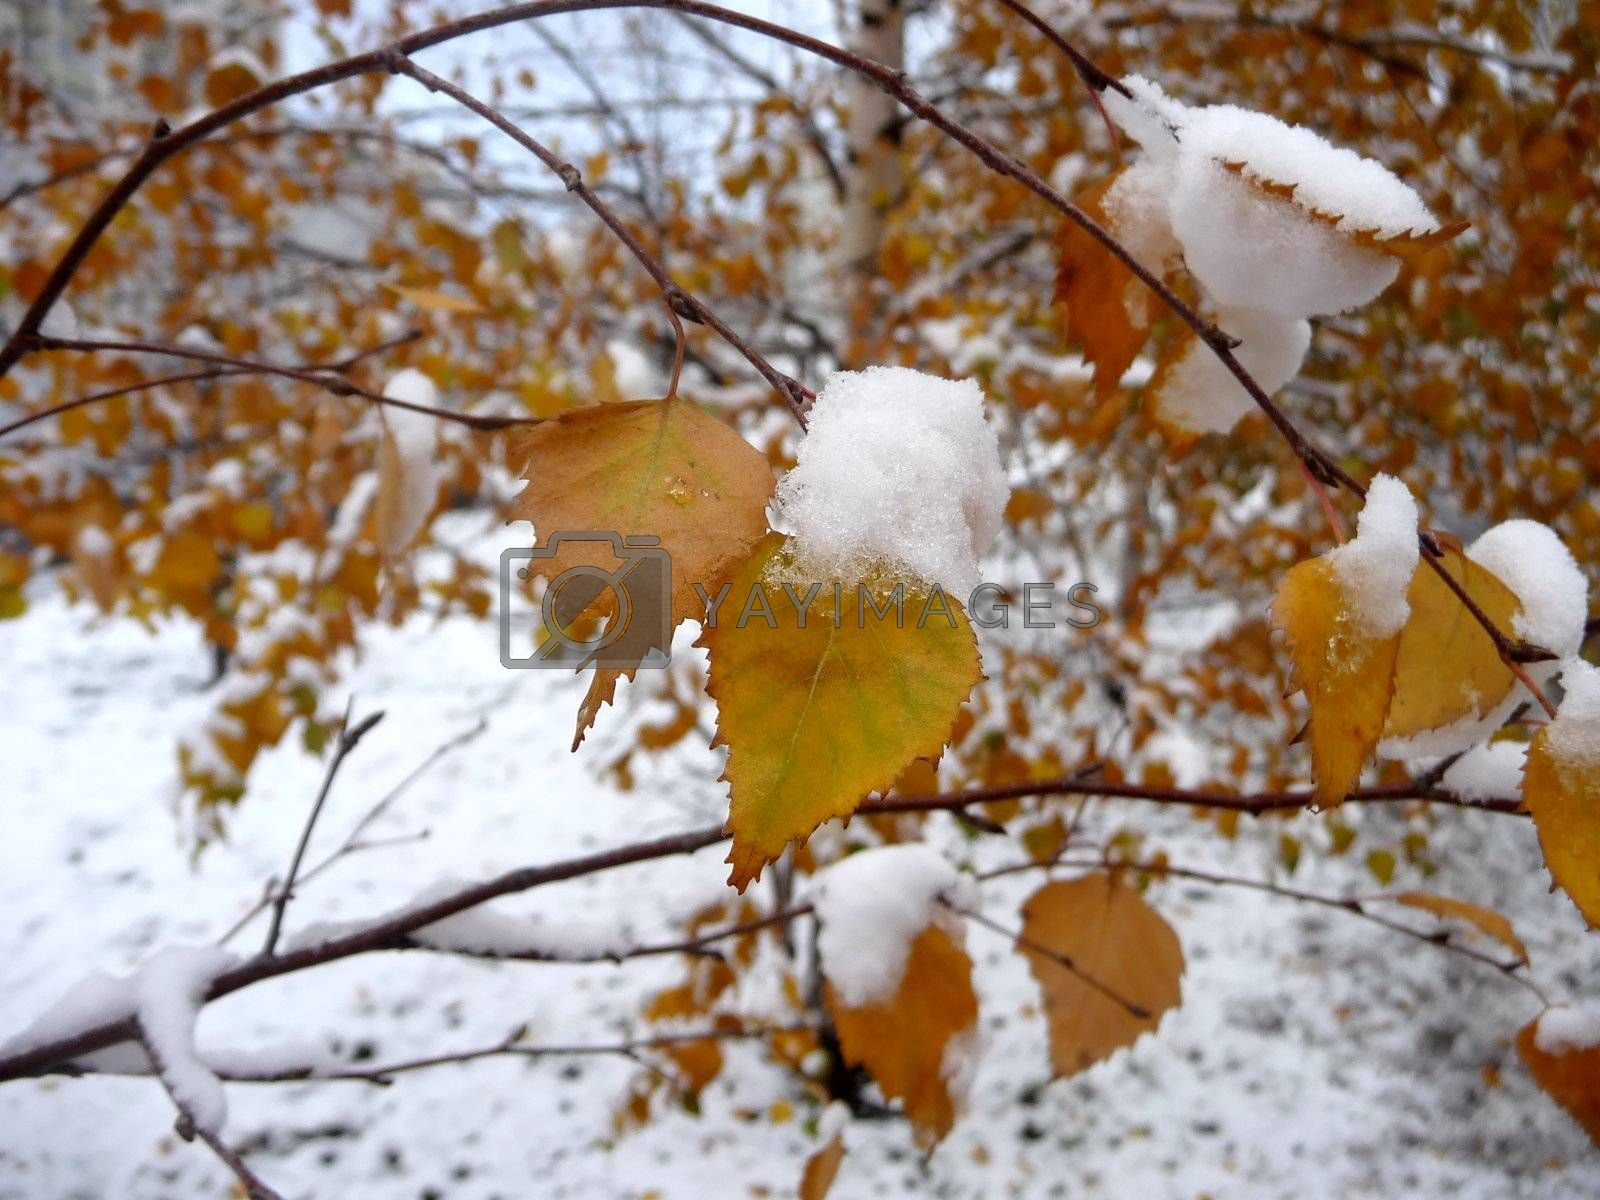 Royalty free image of First snow by tomatto